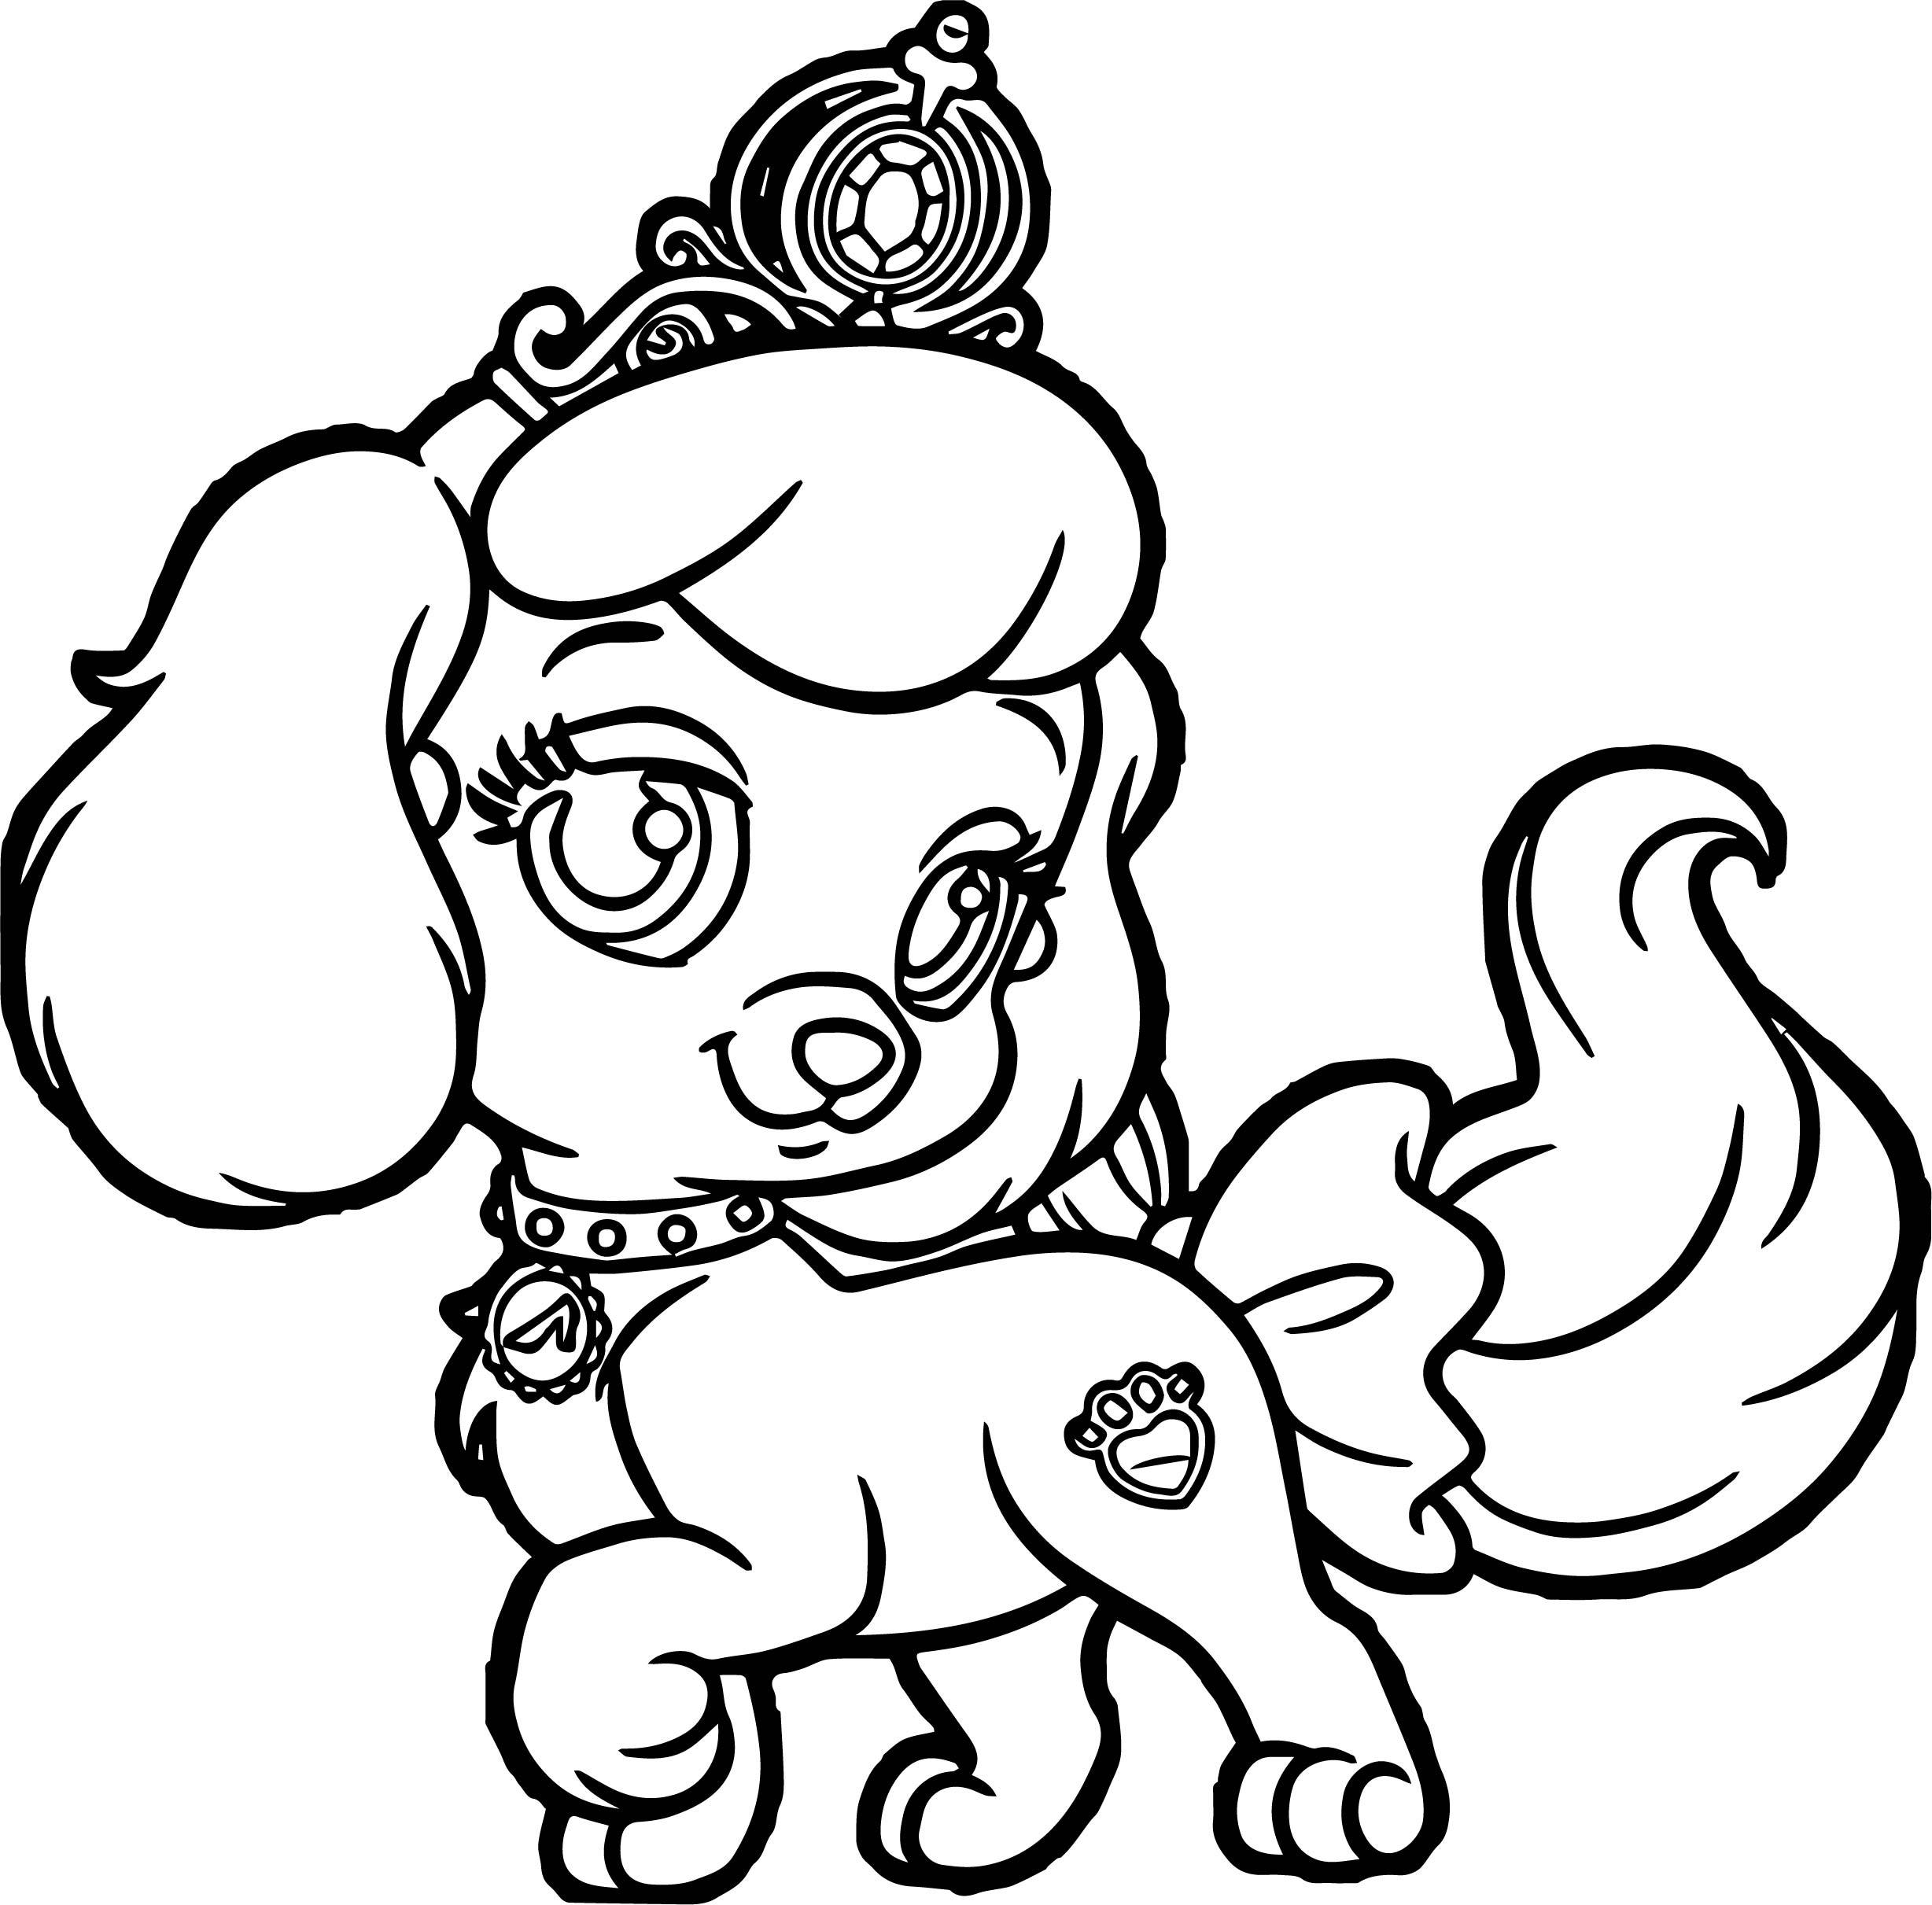 dog coloring pictures to print puppy coloring pages best coloring pages for kids dog to coloring pictures print